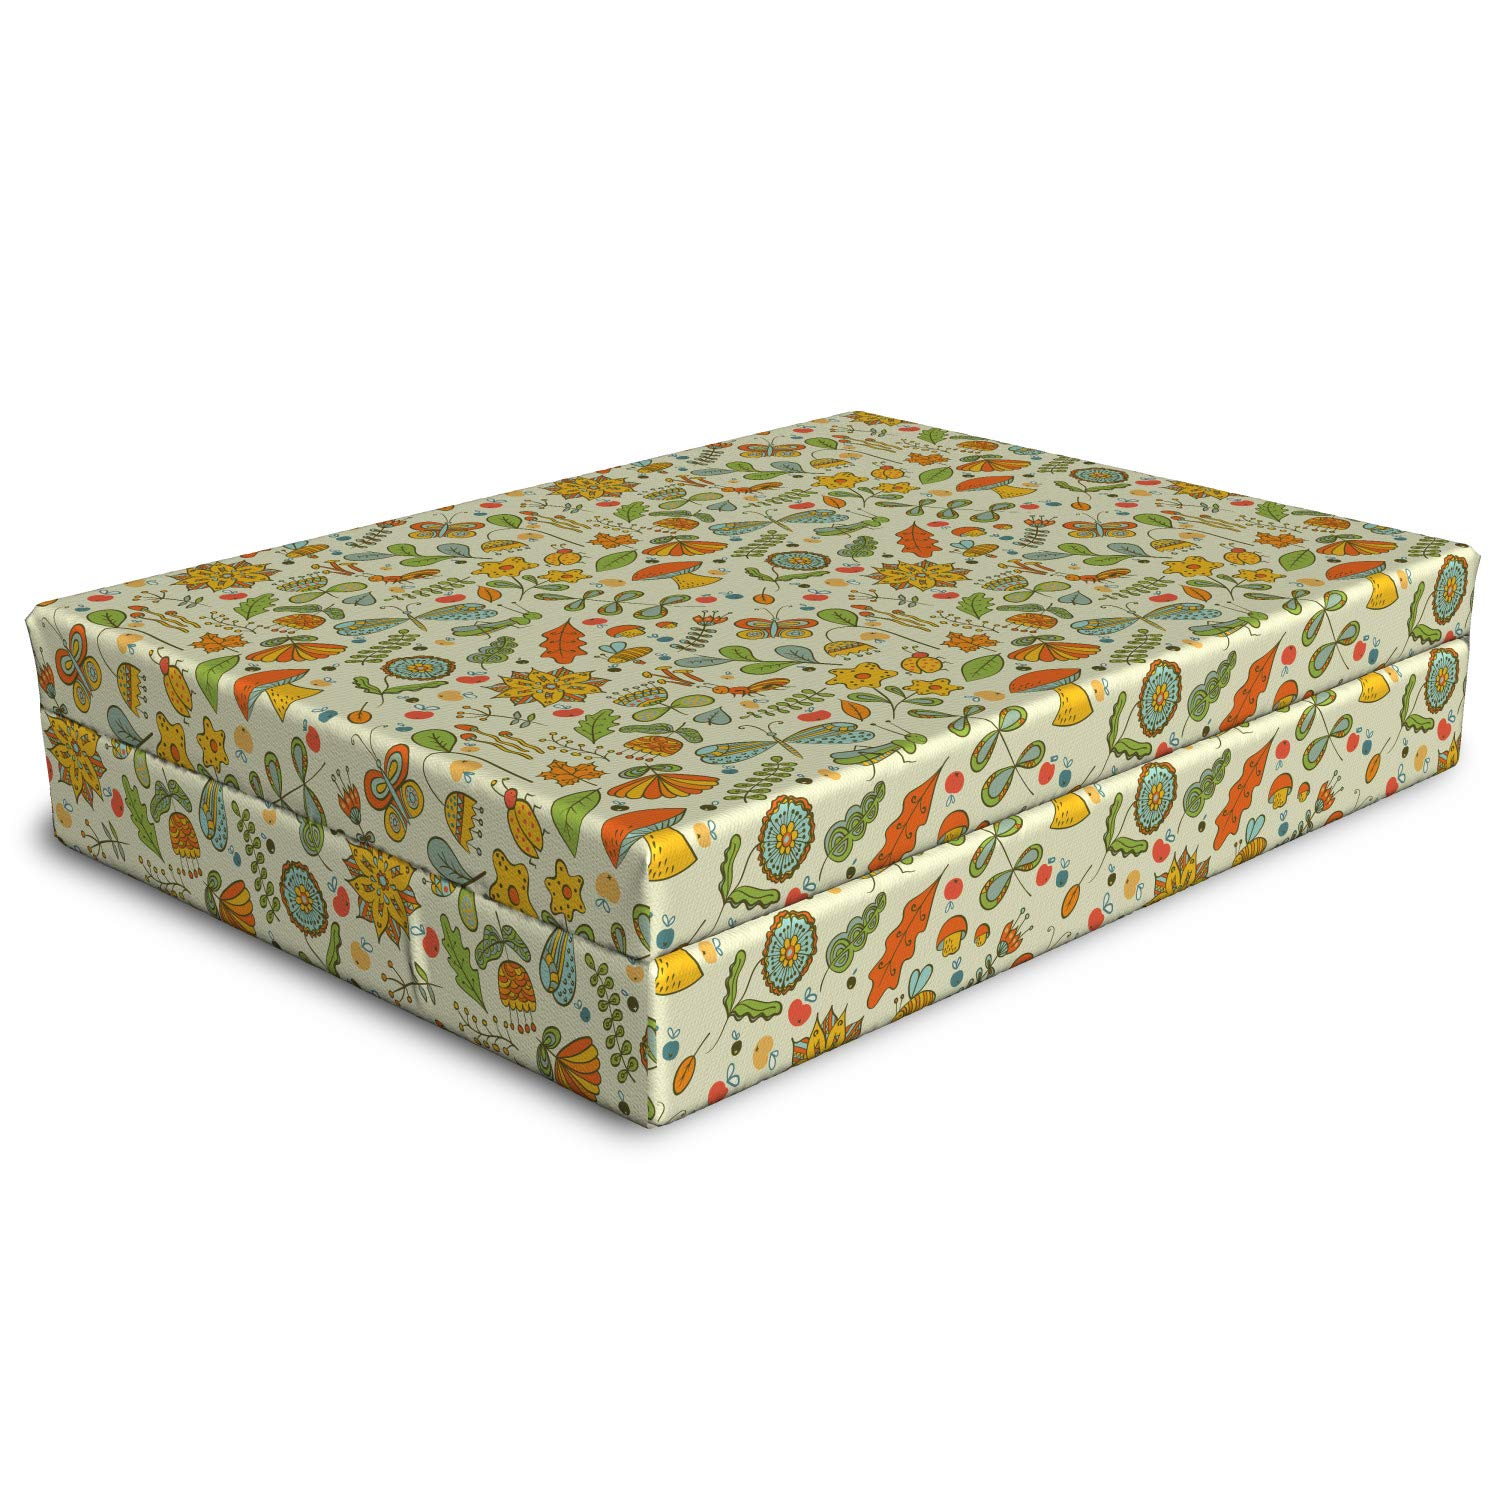 Lunarable Autumn Dog Bed, Pattern of Oriental Flowers Animals Mushrooms Leaves Insects Nature in Fall Colors, Dog Pillow with High Resilience Visco Foam for Pets, 32'' x 24'' x 6'', Multicolor